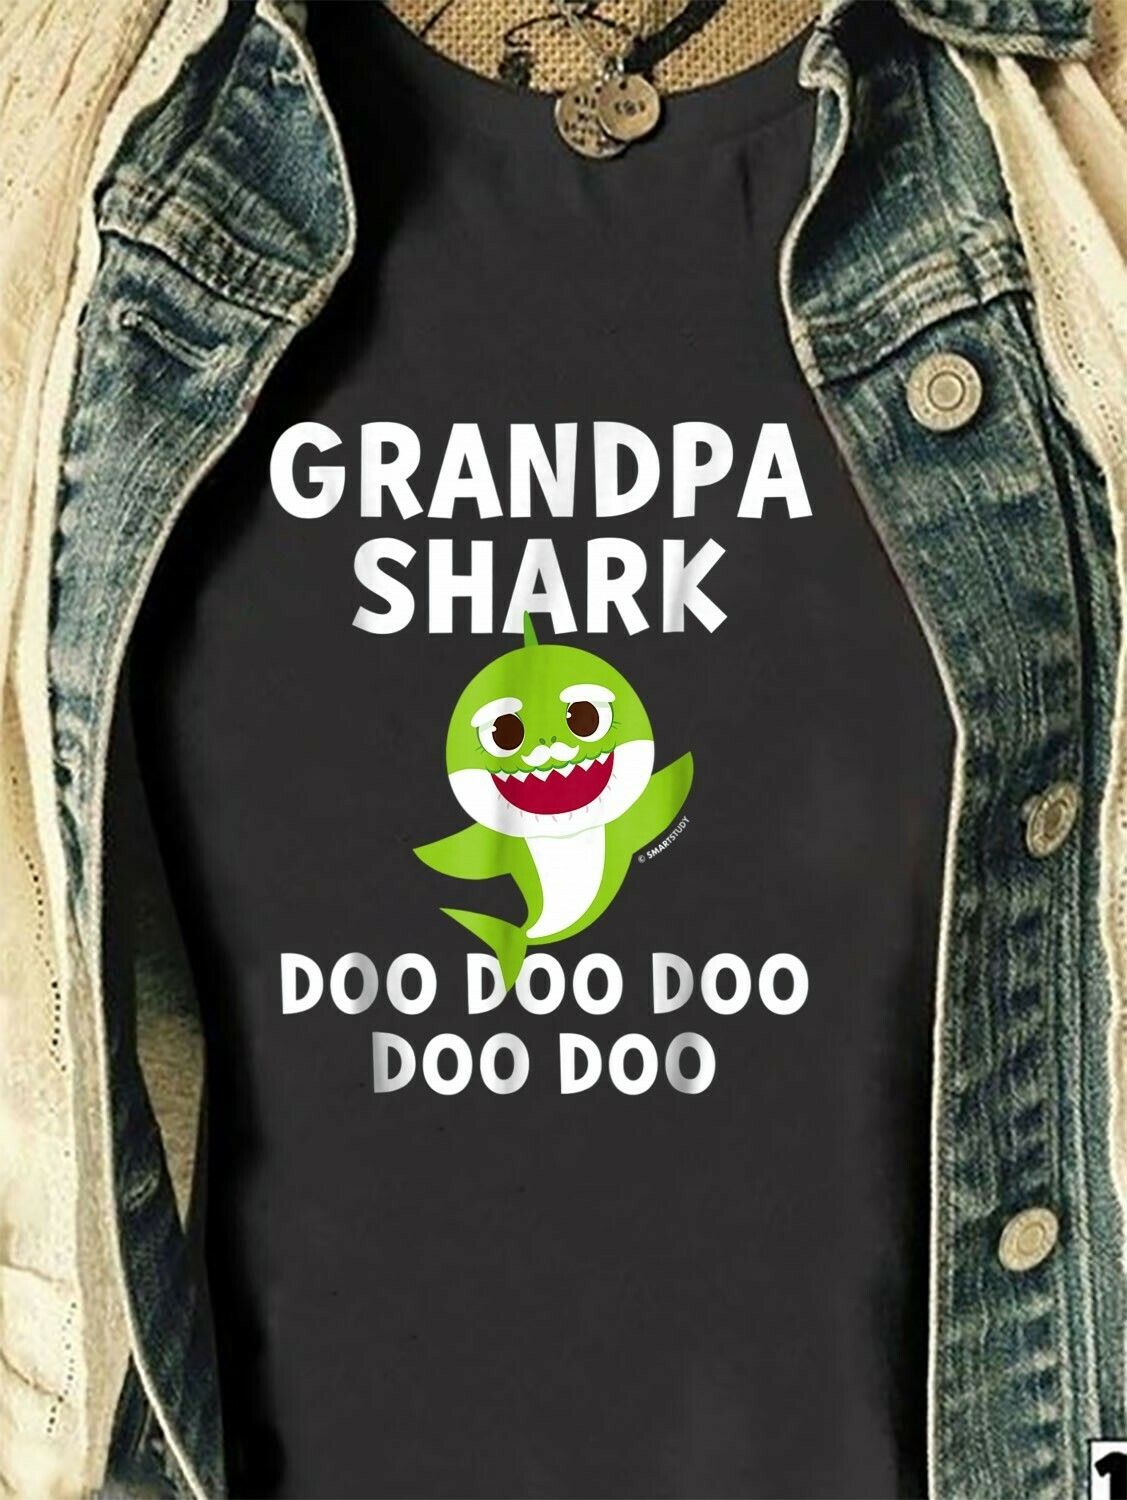 Grandpa Shark Pinkfong Toddler Baby Shark Doo Doo Doo Family Vacation Birthday Shark Mommy Daddy Grandma Sister Brother Shark s T-Shirt Sweatshirt Hoodie Long Sleeve Tee Kids Youth Gifts Jolly Family